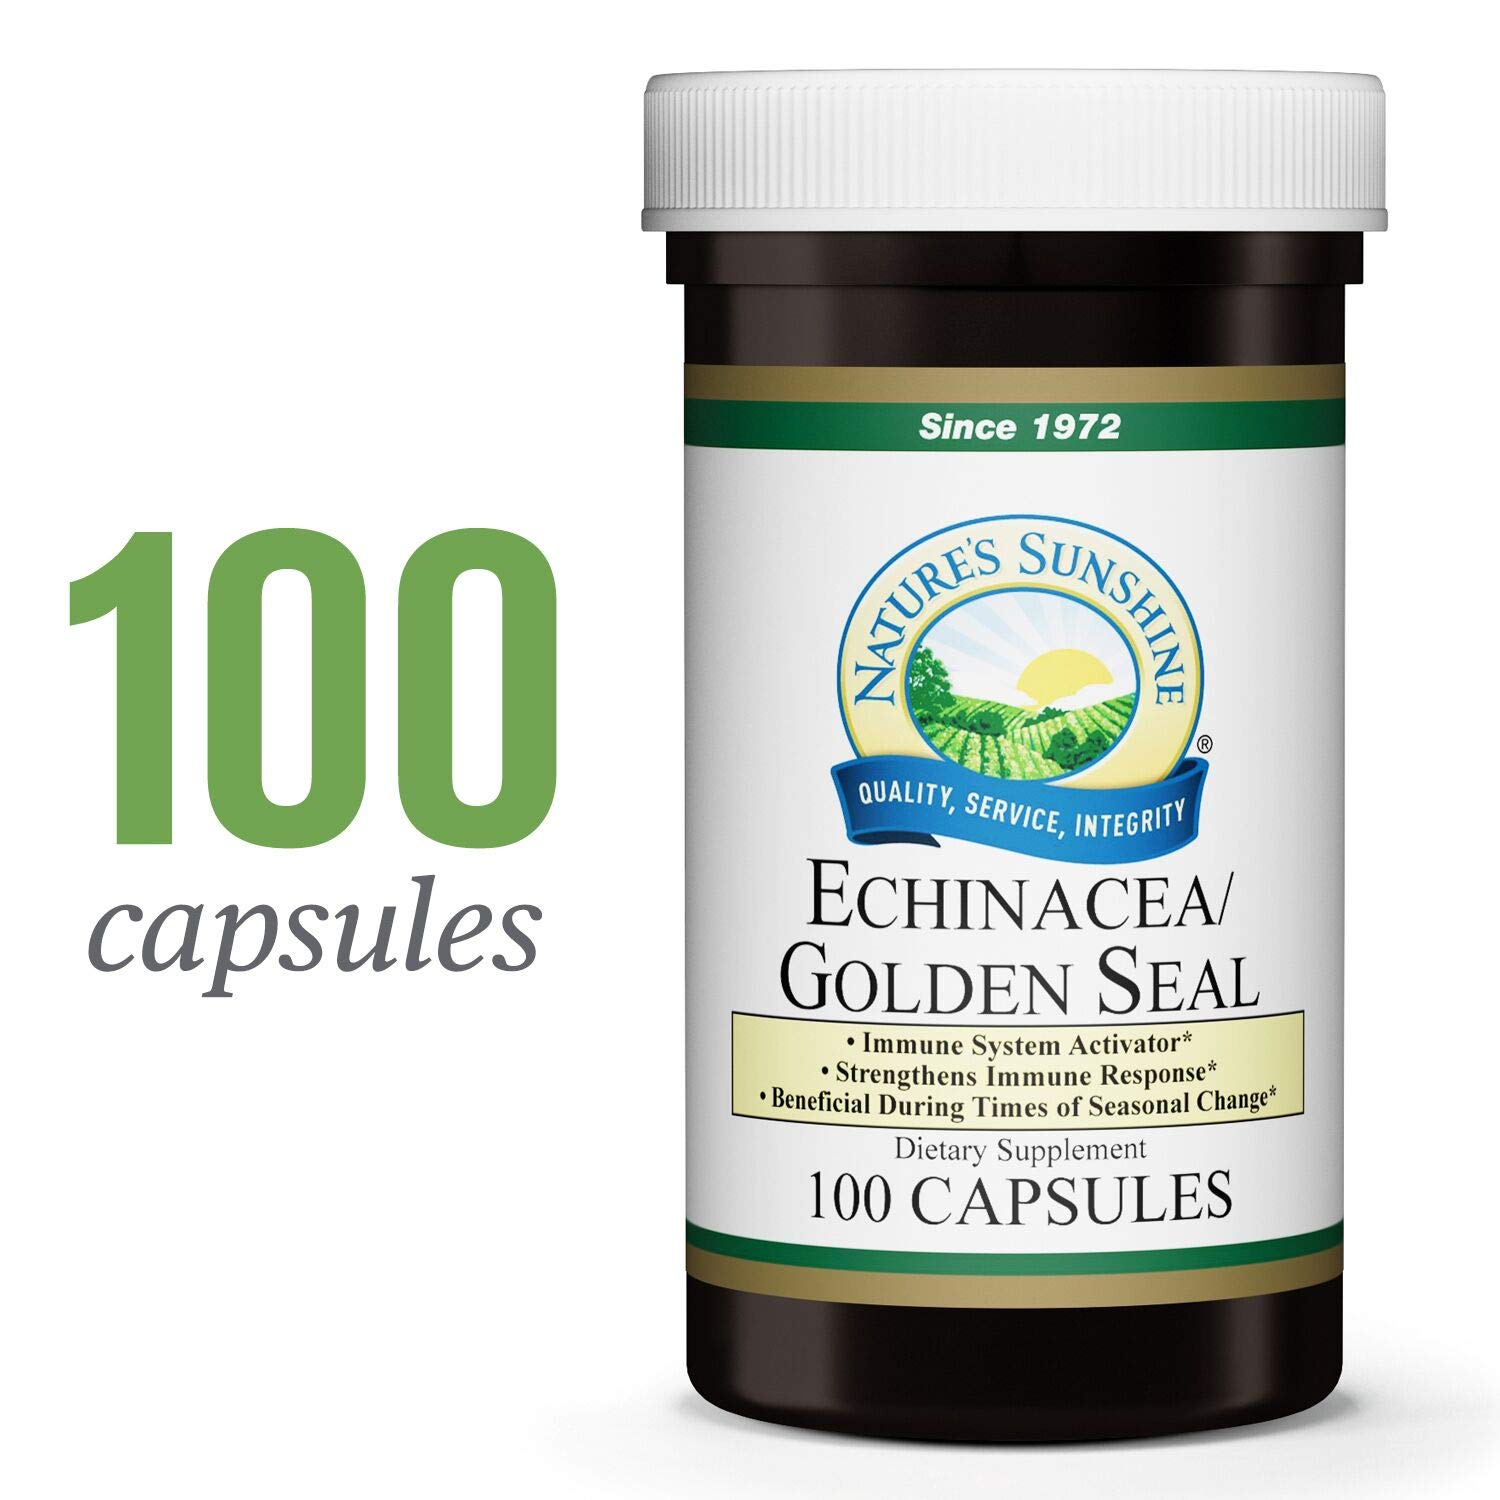 Nature's Sunshine Echinacea and Golden Seal, 100 Capsules   Enhances The Activity of The Immune System and Helps The Body Expel Toxins